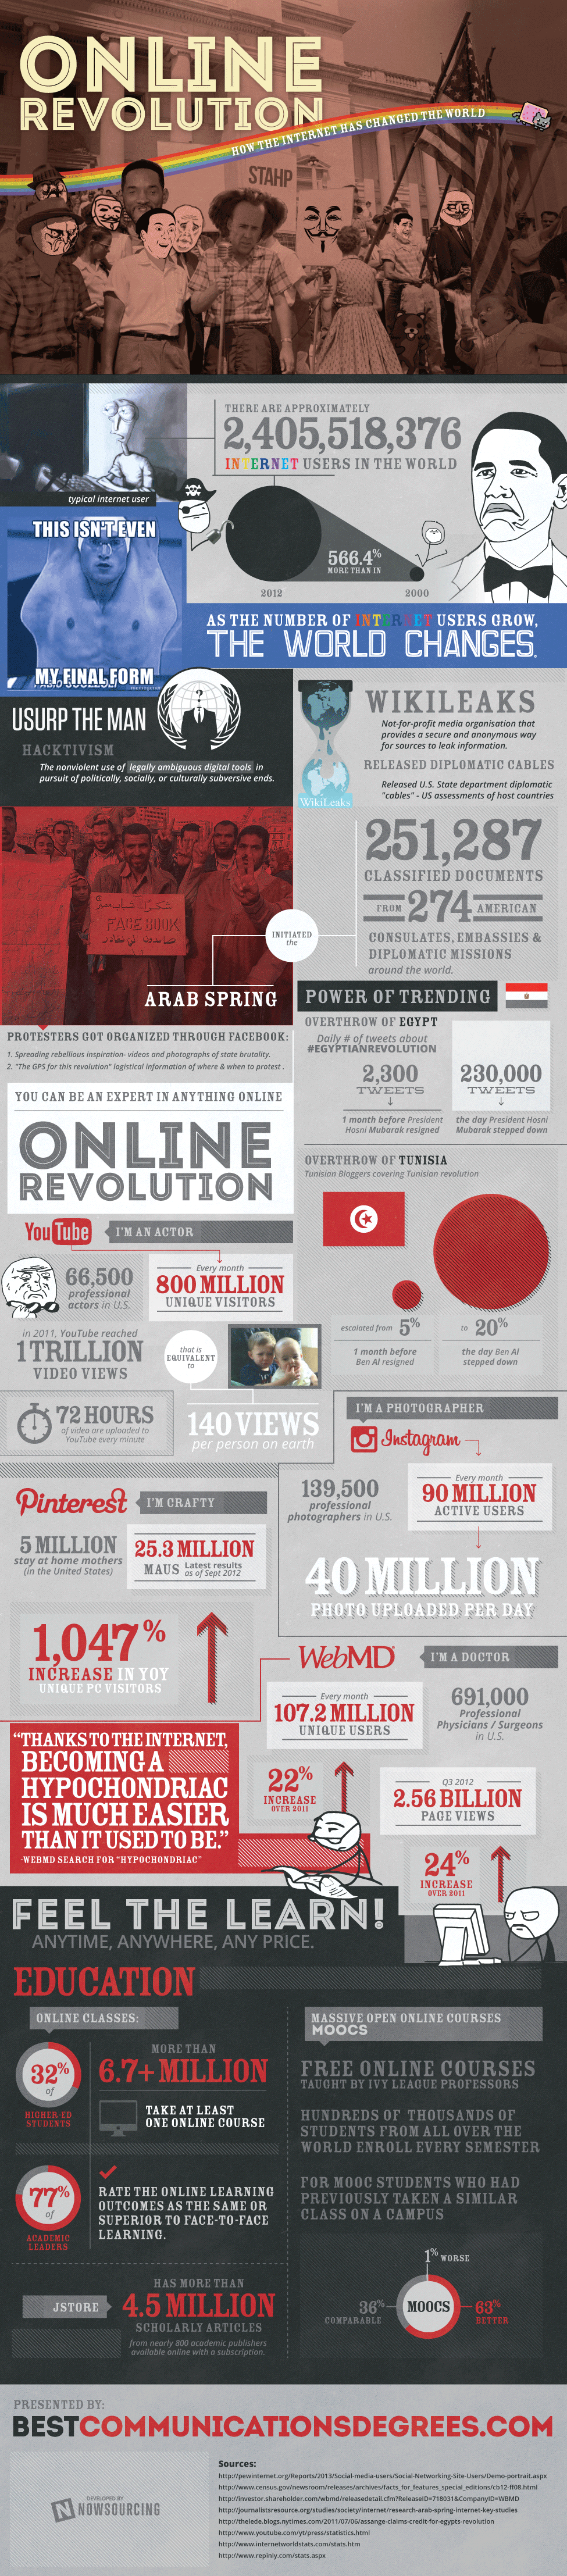 Online Revolution: How the Internet Has Changed the World